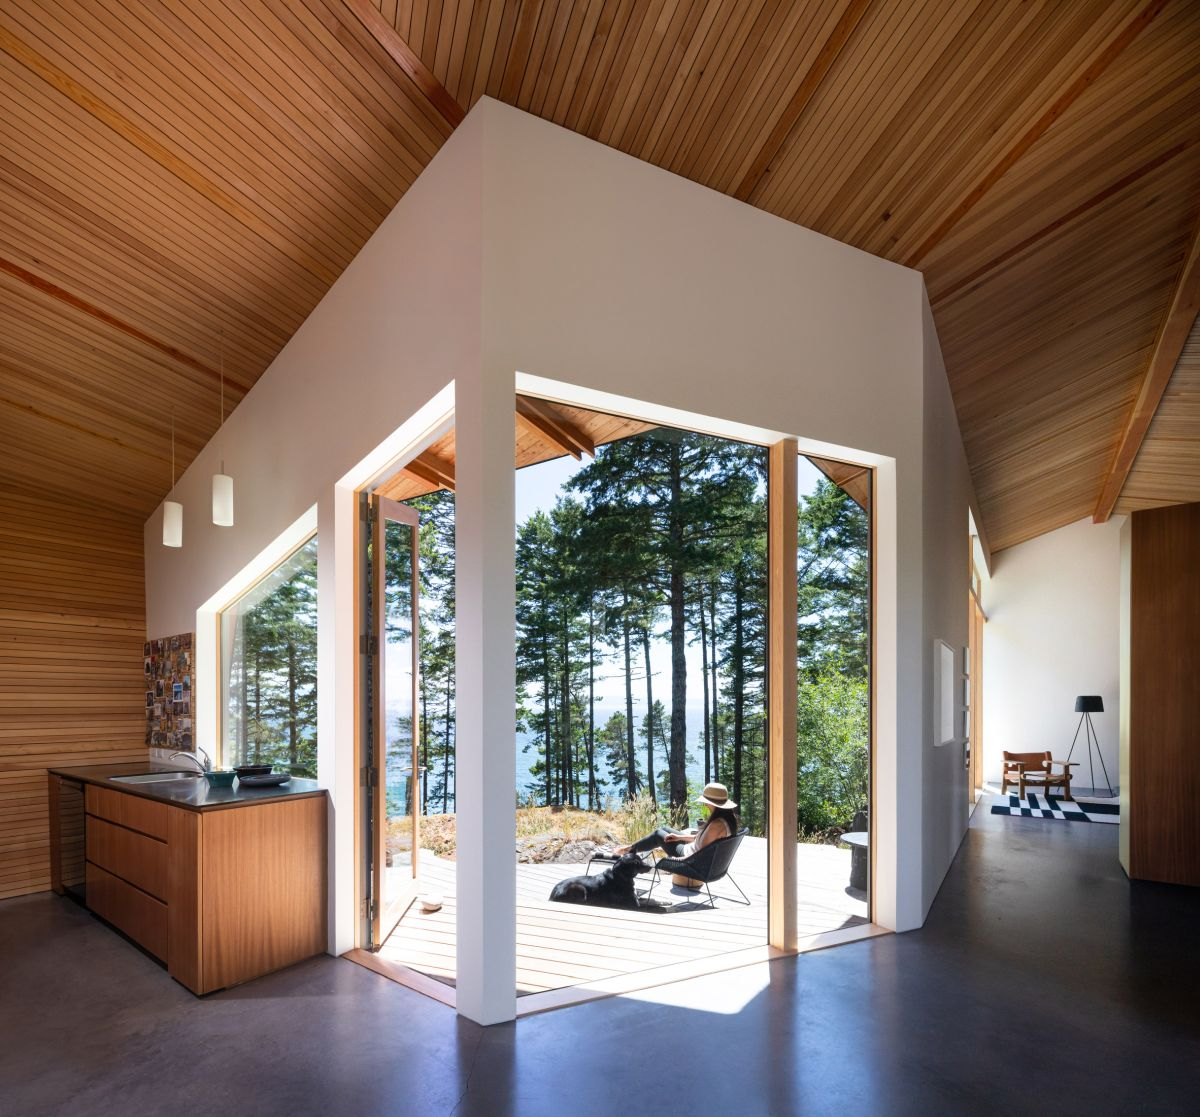 The geometric layout exposes the central section of the house to the forest and even gives a glimpse at the sea